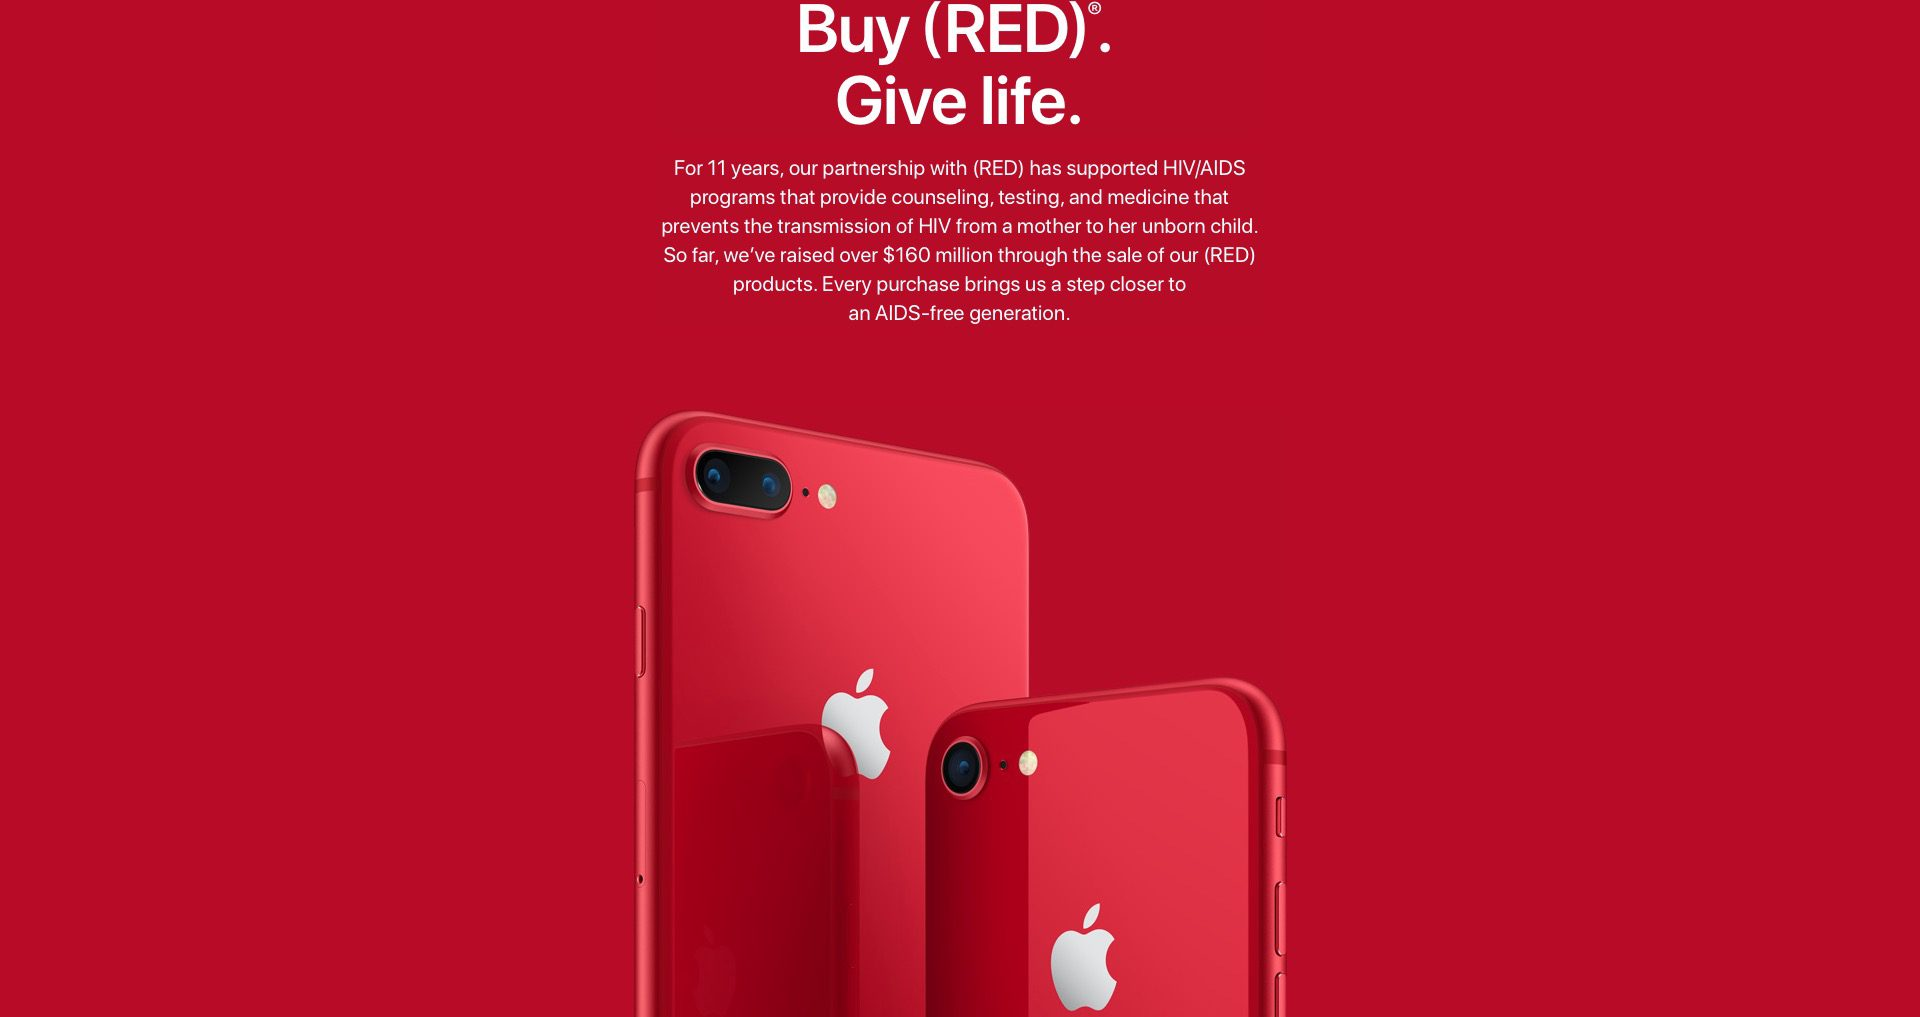 Apple iPhone 8 Plus (PRODUCT) RED Special Edition